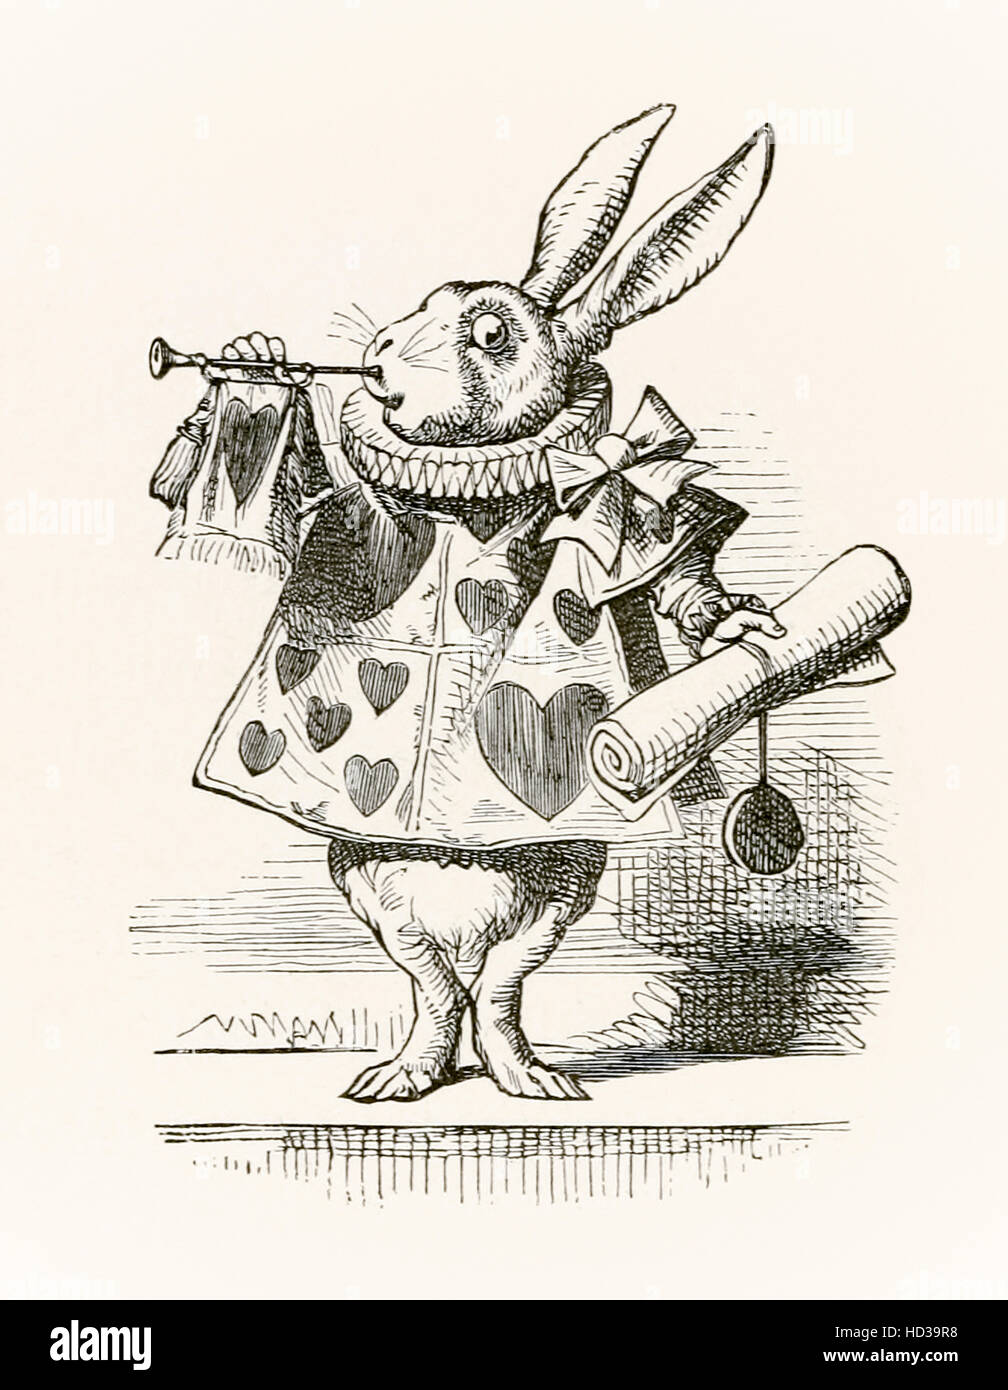 The White Rabbit with trumpet and scroll heralding the accusation, illustration by Sir John Tenniel  (1820-1914) - Stock Image